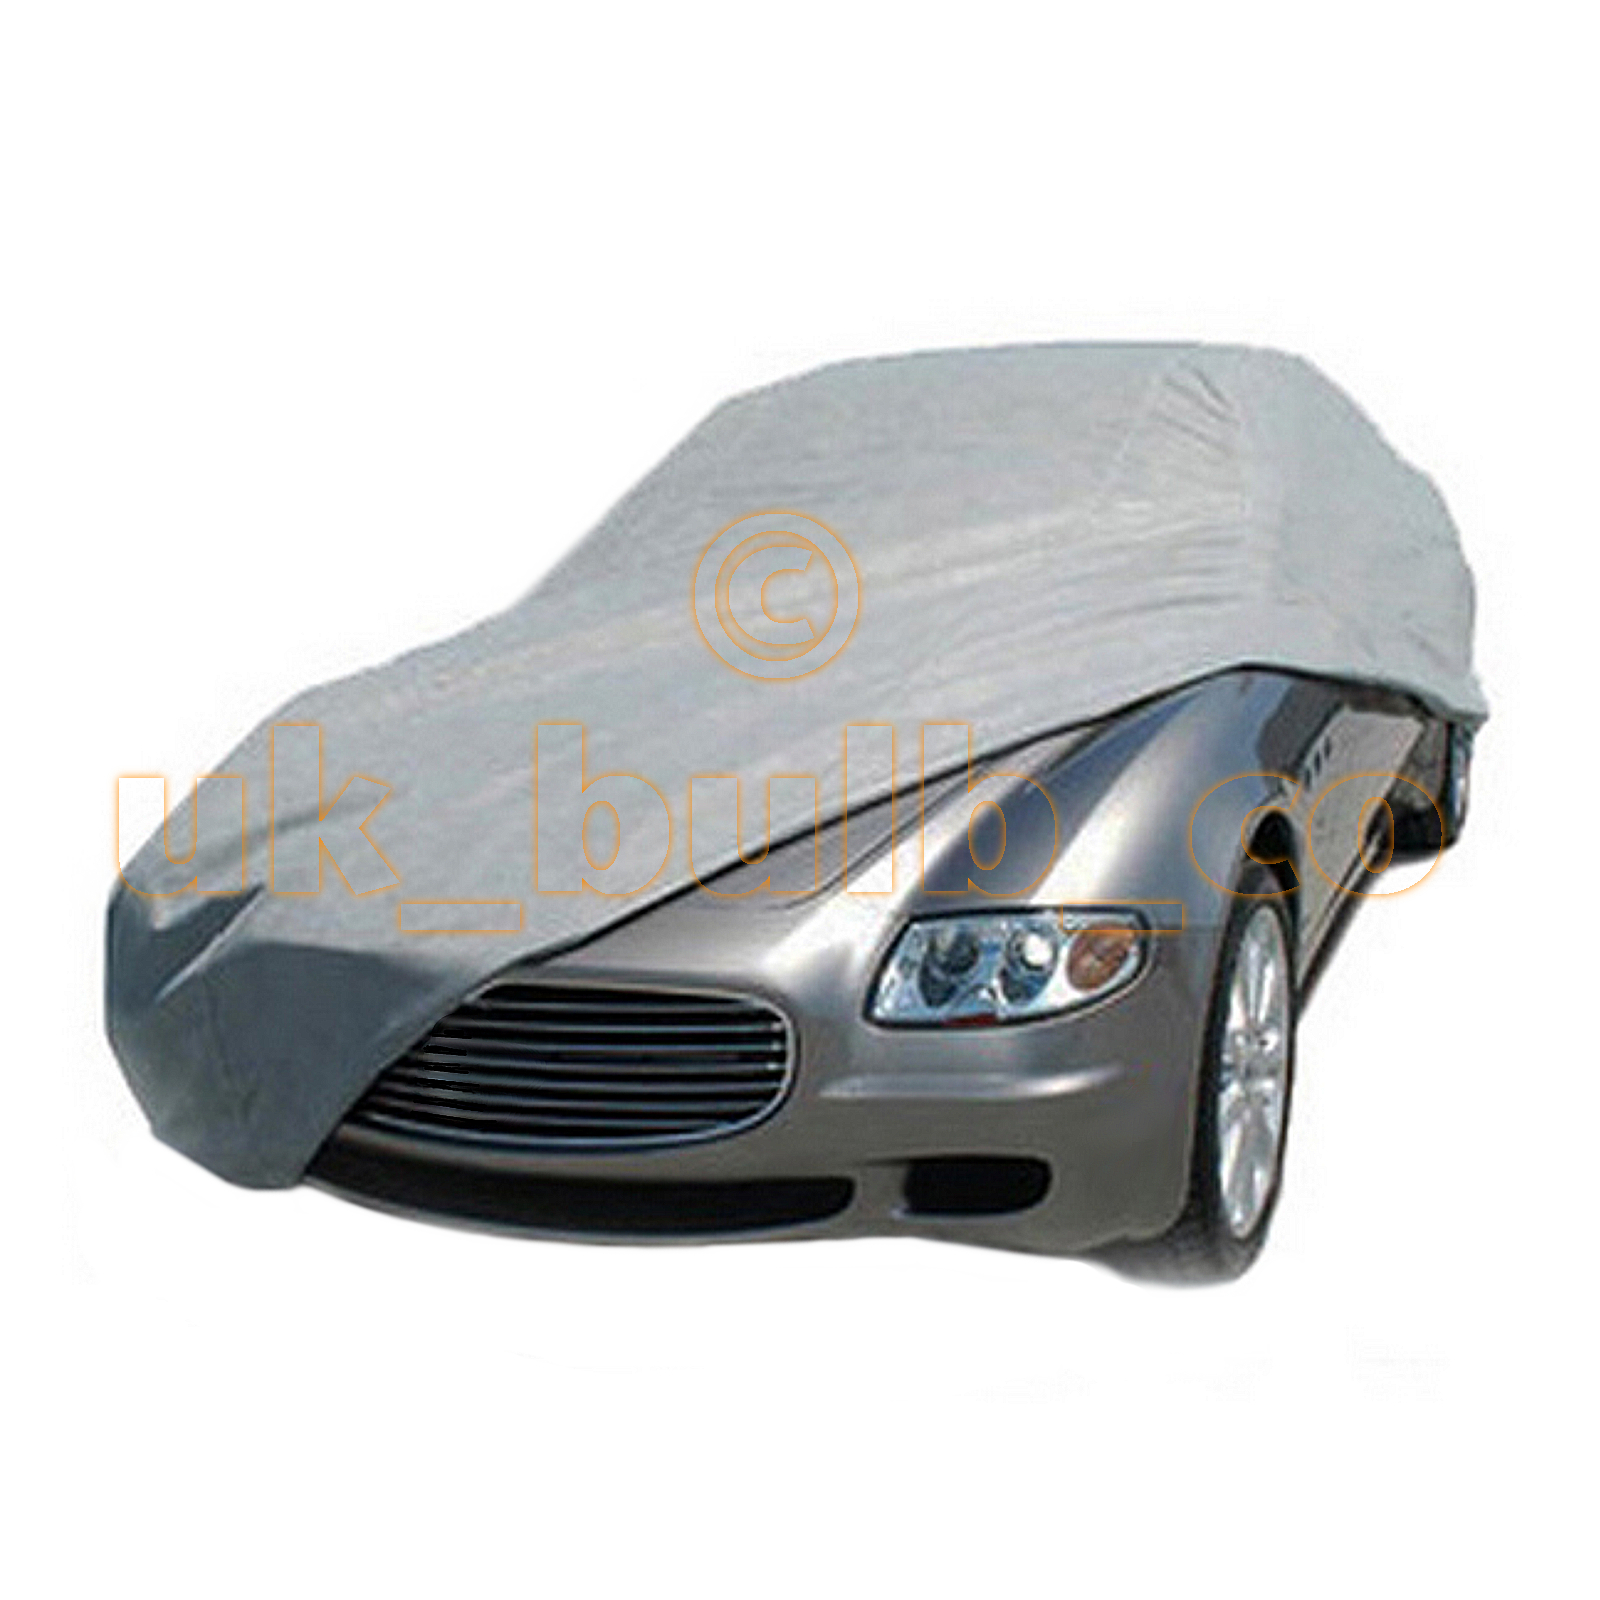 SILVER WATERPROOF CAR COVER TO FIT Hummer Hummer H2 SUT MODELS